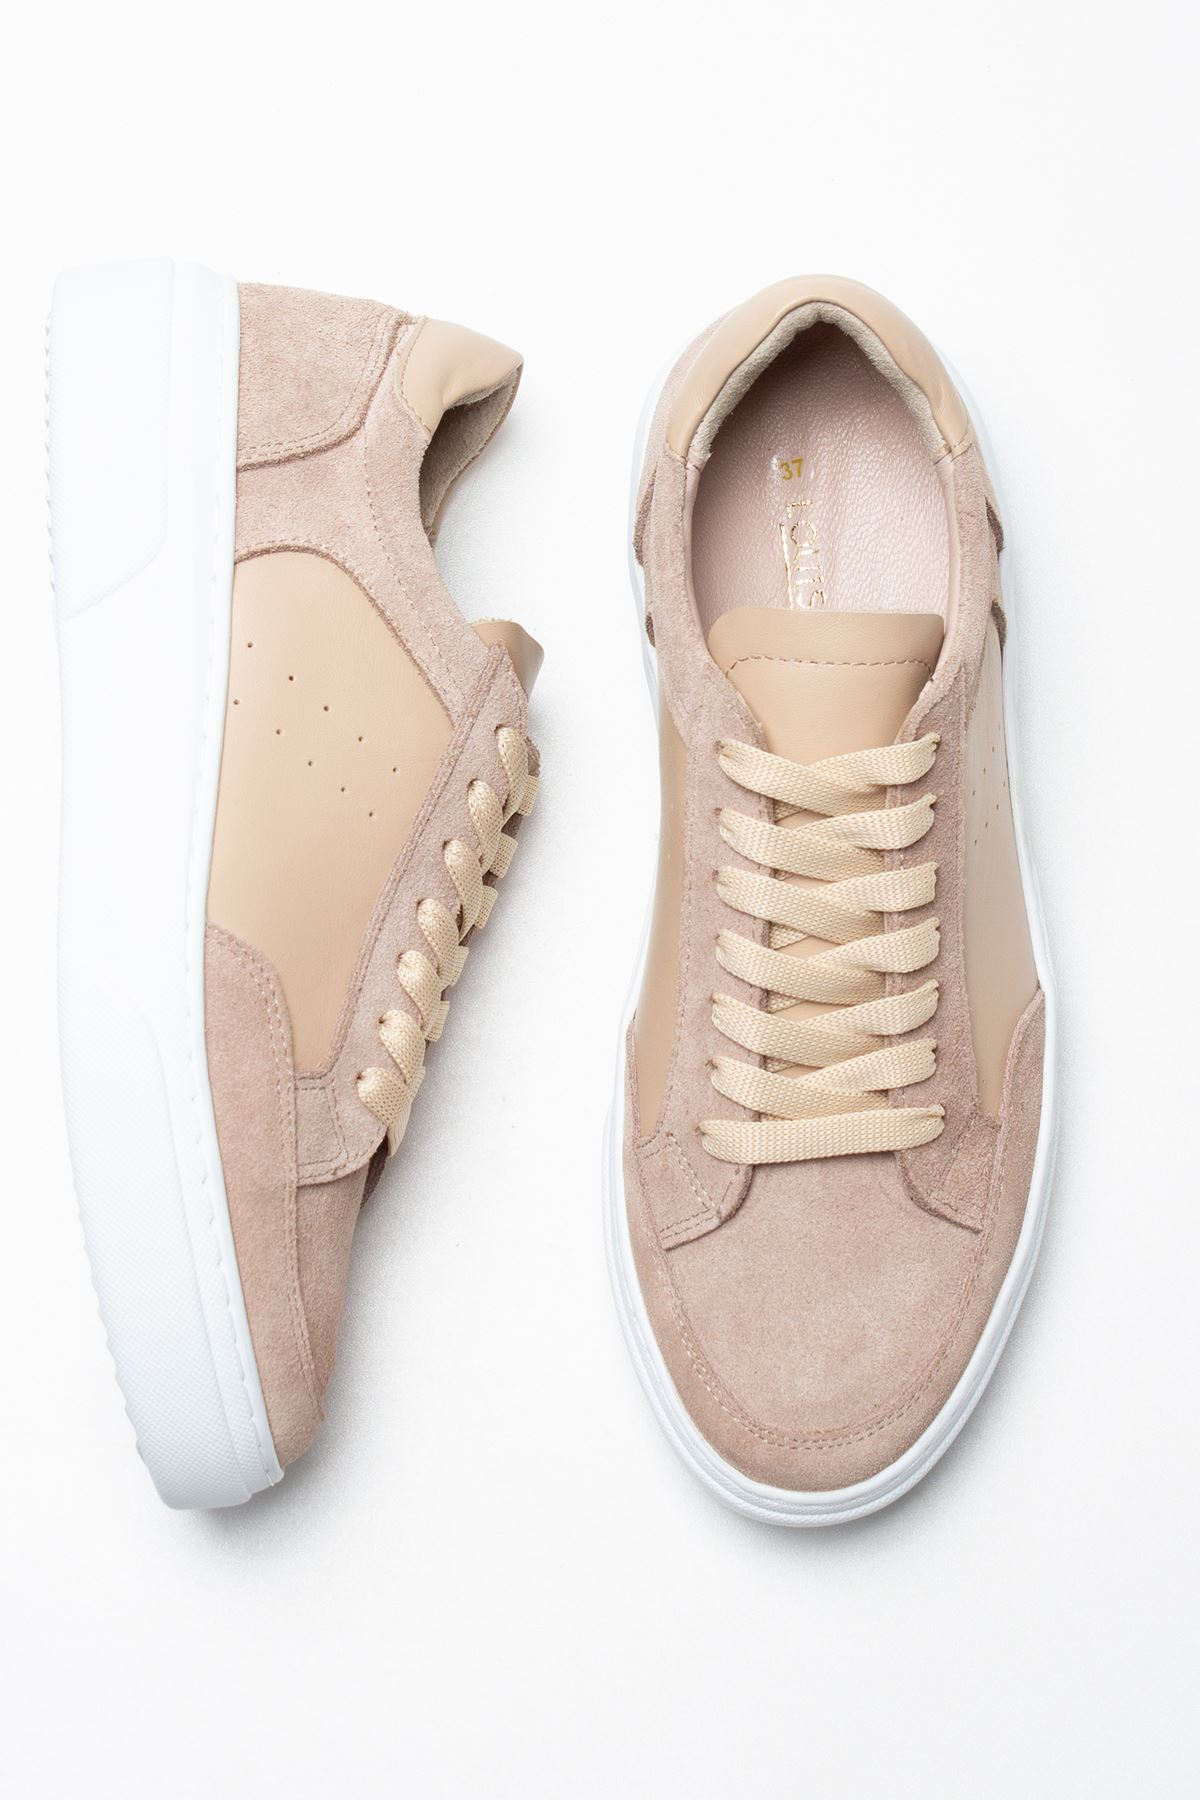 Hedwig Beige Genuine Leather Women Sneakers